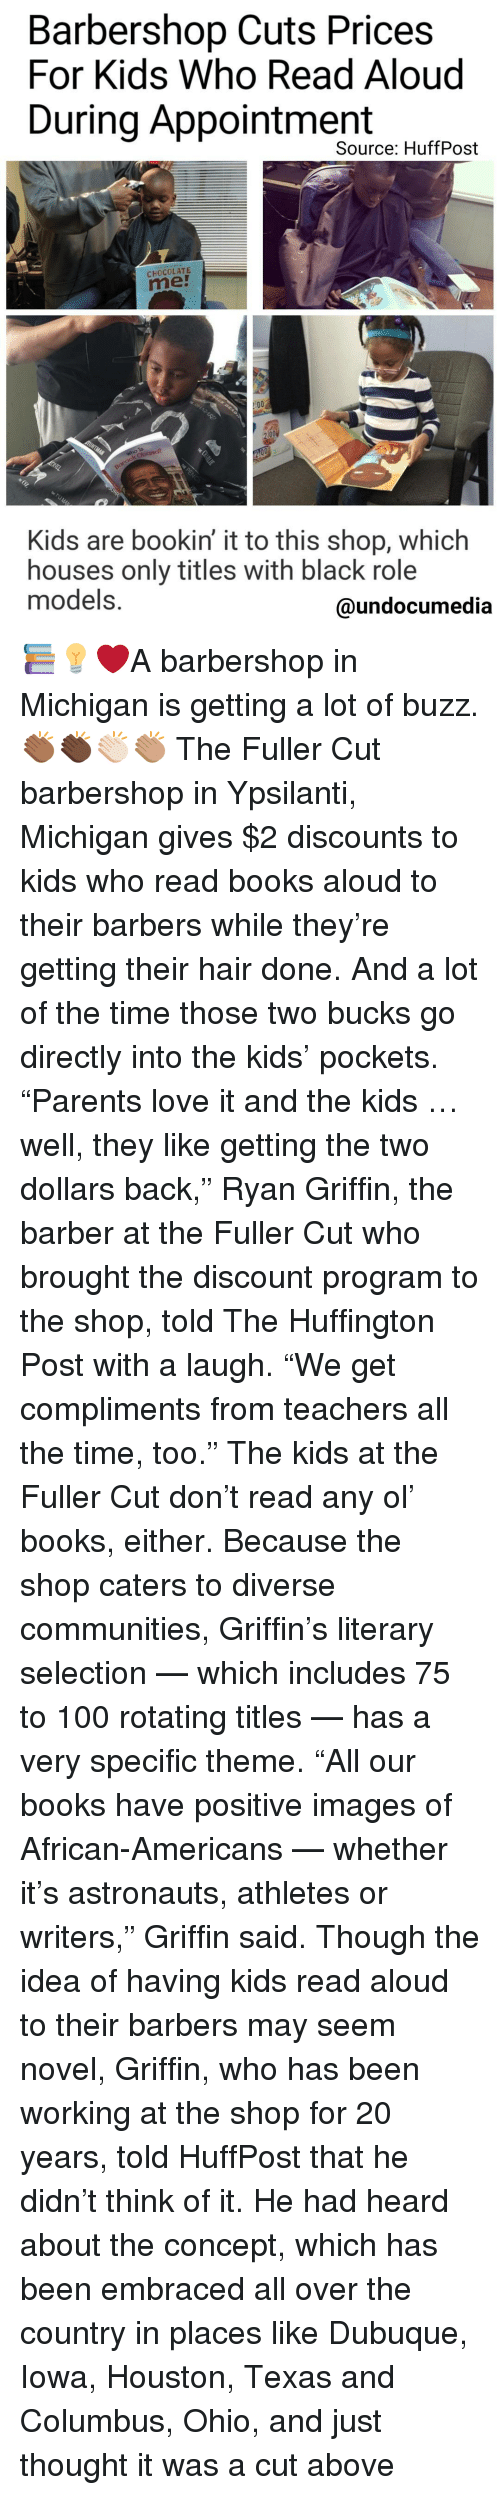 "Barbershops: Barbershop Cuts Prices  For Kids Who Read Aloud  During Appointment  Source: HuffPost  CHOCOLATE  Kids are bookin it to this shop, which  houses only titles With black role  models.  @undocumedia 📚💡❤A barbershop in Michigan is getting a lot of buzz.👏🏾👏🏿👏🏻👏🏽 The Fuller Cut barbershop in Ypsilanti, Michigan gives $2 discounts to kids who read books aloud to their barbers while they're getting their hair done. And a lot of the time those two bucks go directly into the kids' pockets. ""Parents love it and the kids … well, they like getting the two dollars back,"" Ryan Griffin, the barber at the Fuller Cut who brought the discount program to the shop, told The Huffington Post with a laugh. ""We get compliments from teachers all the time, too."" The kids at the Fuller Cut don't read any ol' books, either. Because the shop caters to diverse communities, Griffin's literary selection — which includes 75 to 100 rotating titles — has a very specific theme. ""All our books have positive images of African-Americans — whether it's astronauts, athletes or writers,"" Griffin said. Though the idea of having kids read aloud to their barbers may seem novel, Griffin, who has been working at the shop for 20 years, told HuffPost that he didn't think of it. He had heard about the concept, which has been embraced all over the country in places like Dubuque, Iowa, Houston, Texas and Columbus, Ohio, and just thought it was a cut above"